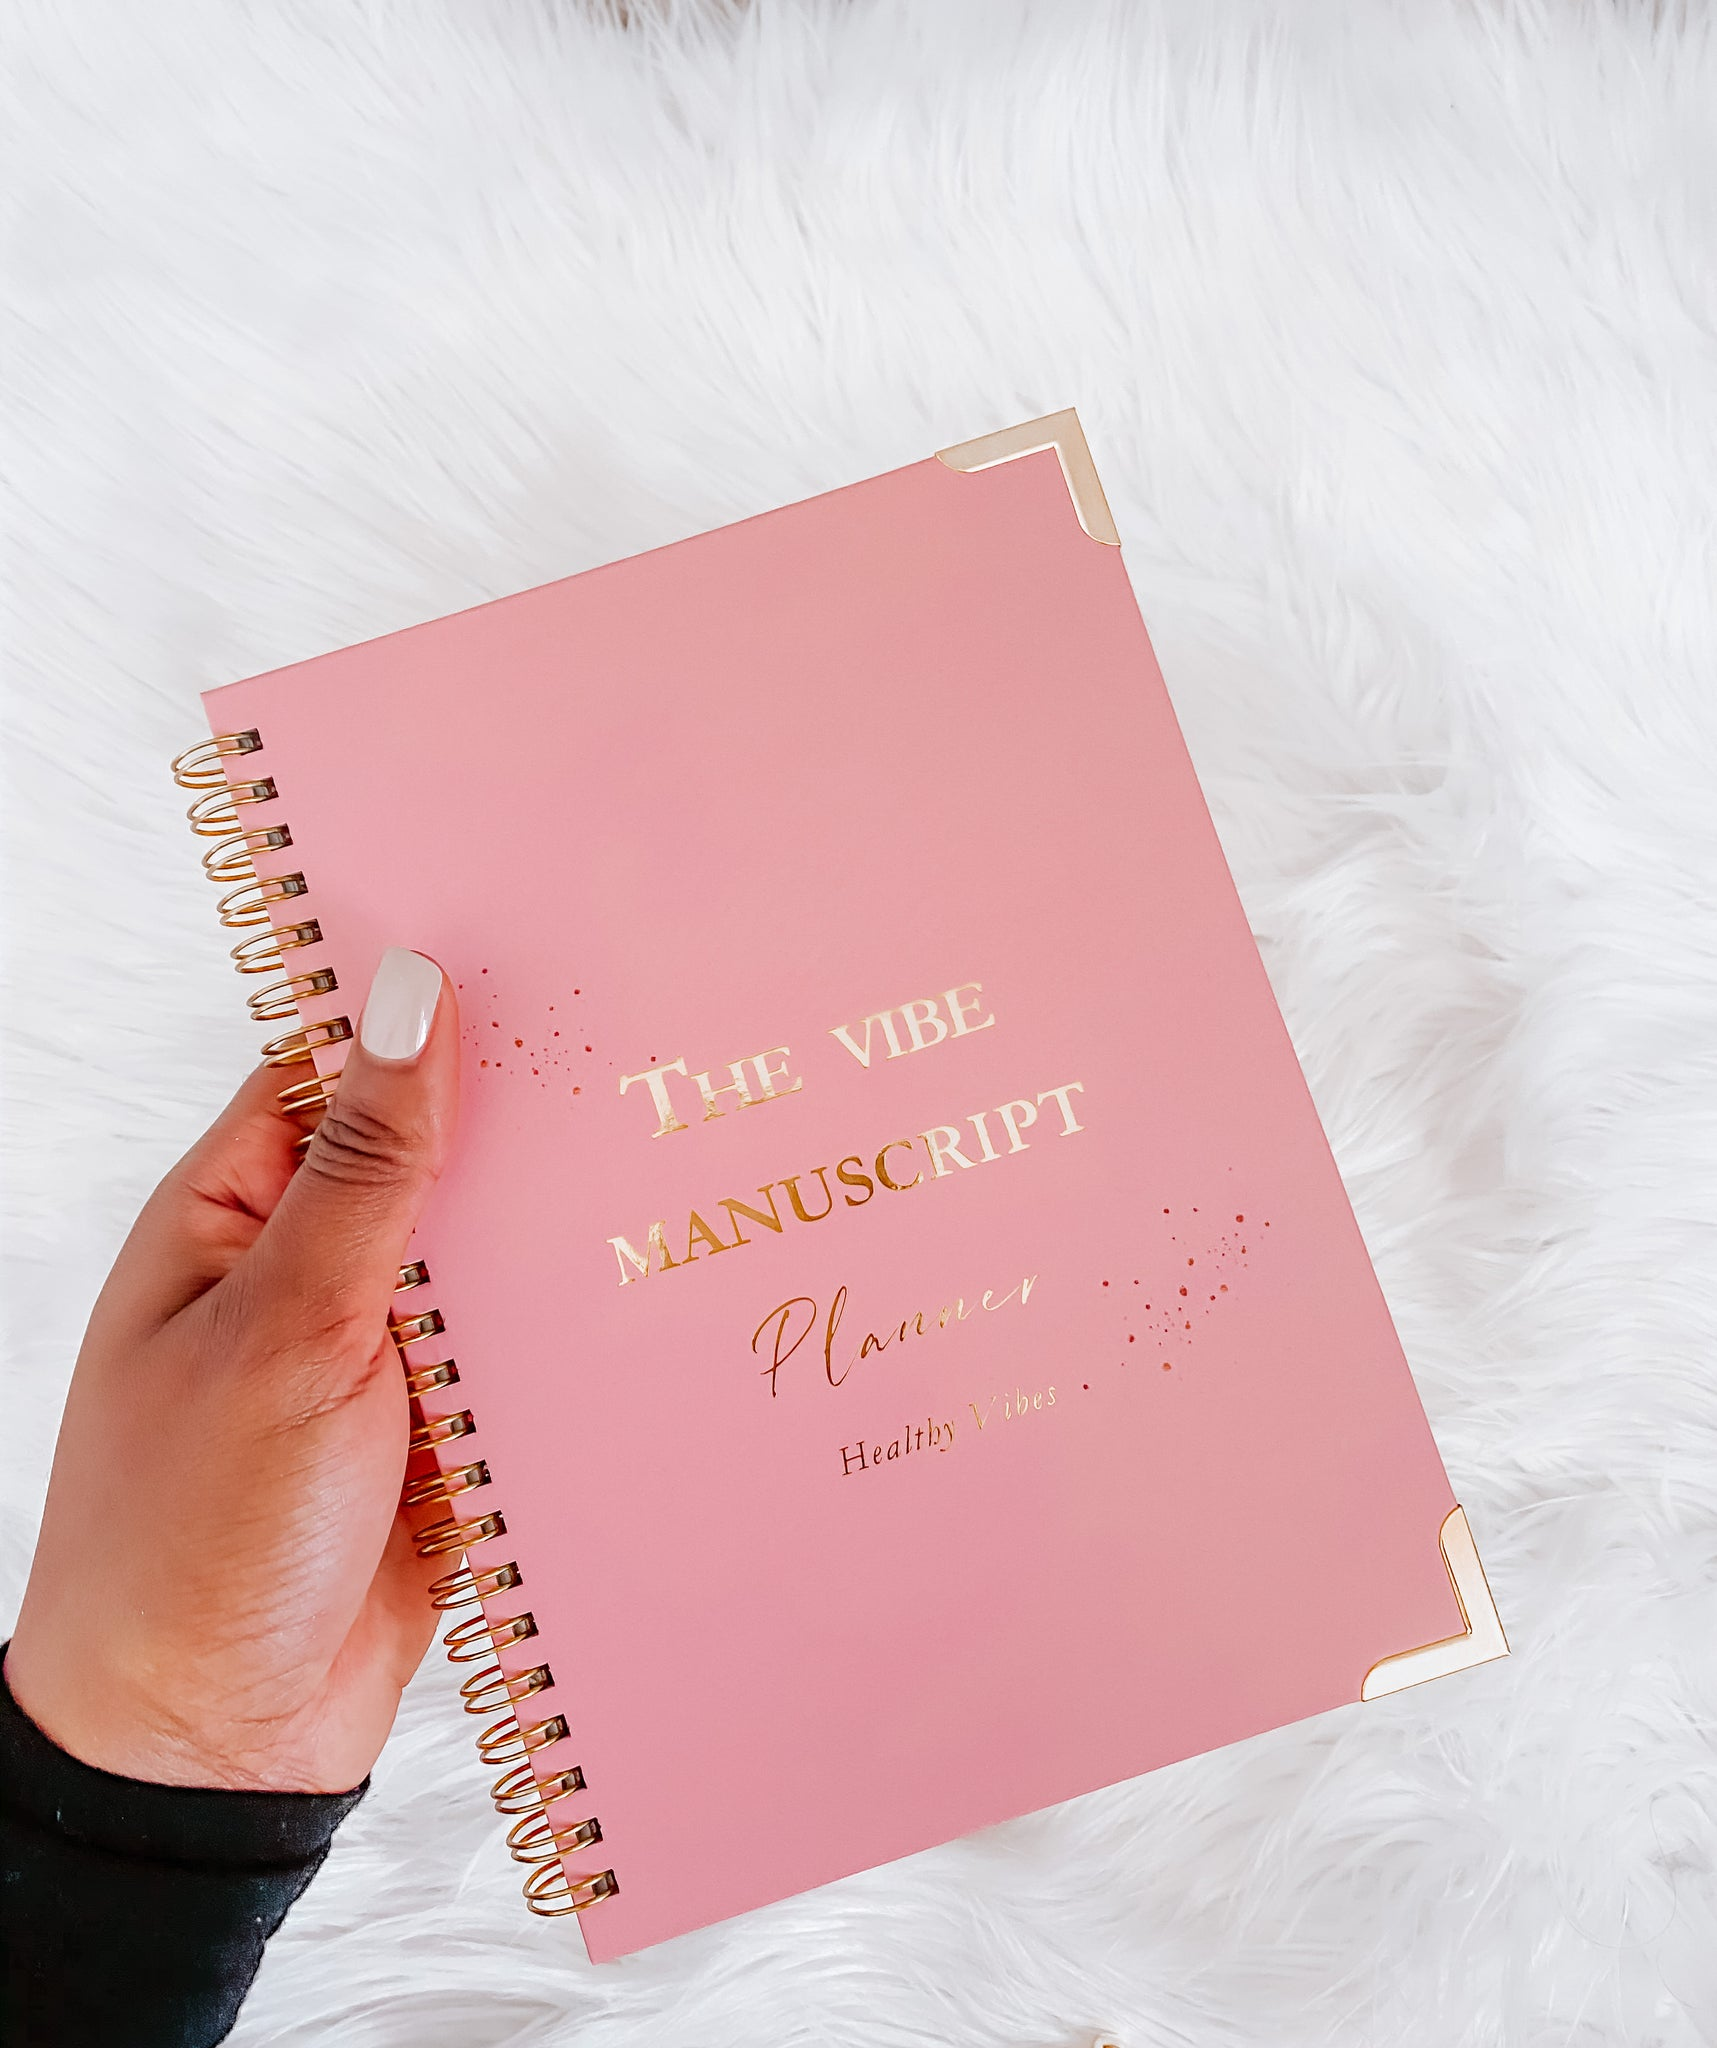 The Vibe Manuscript: A Self Care Journal